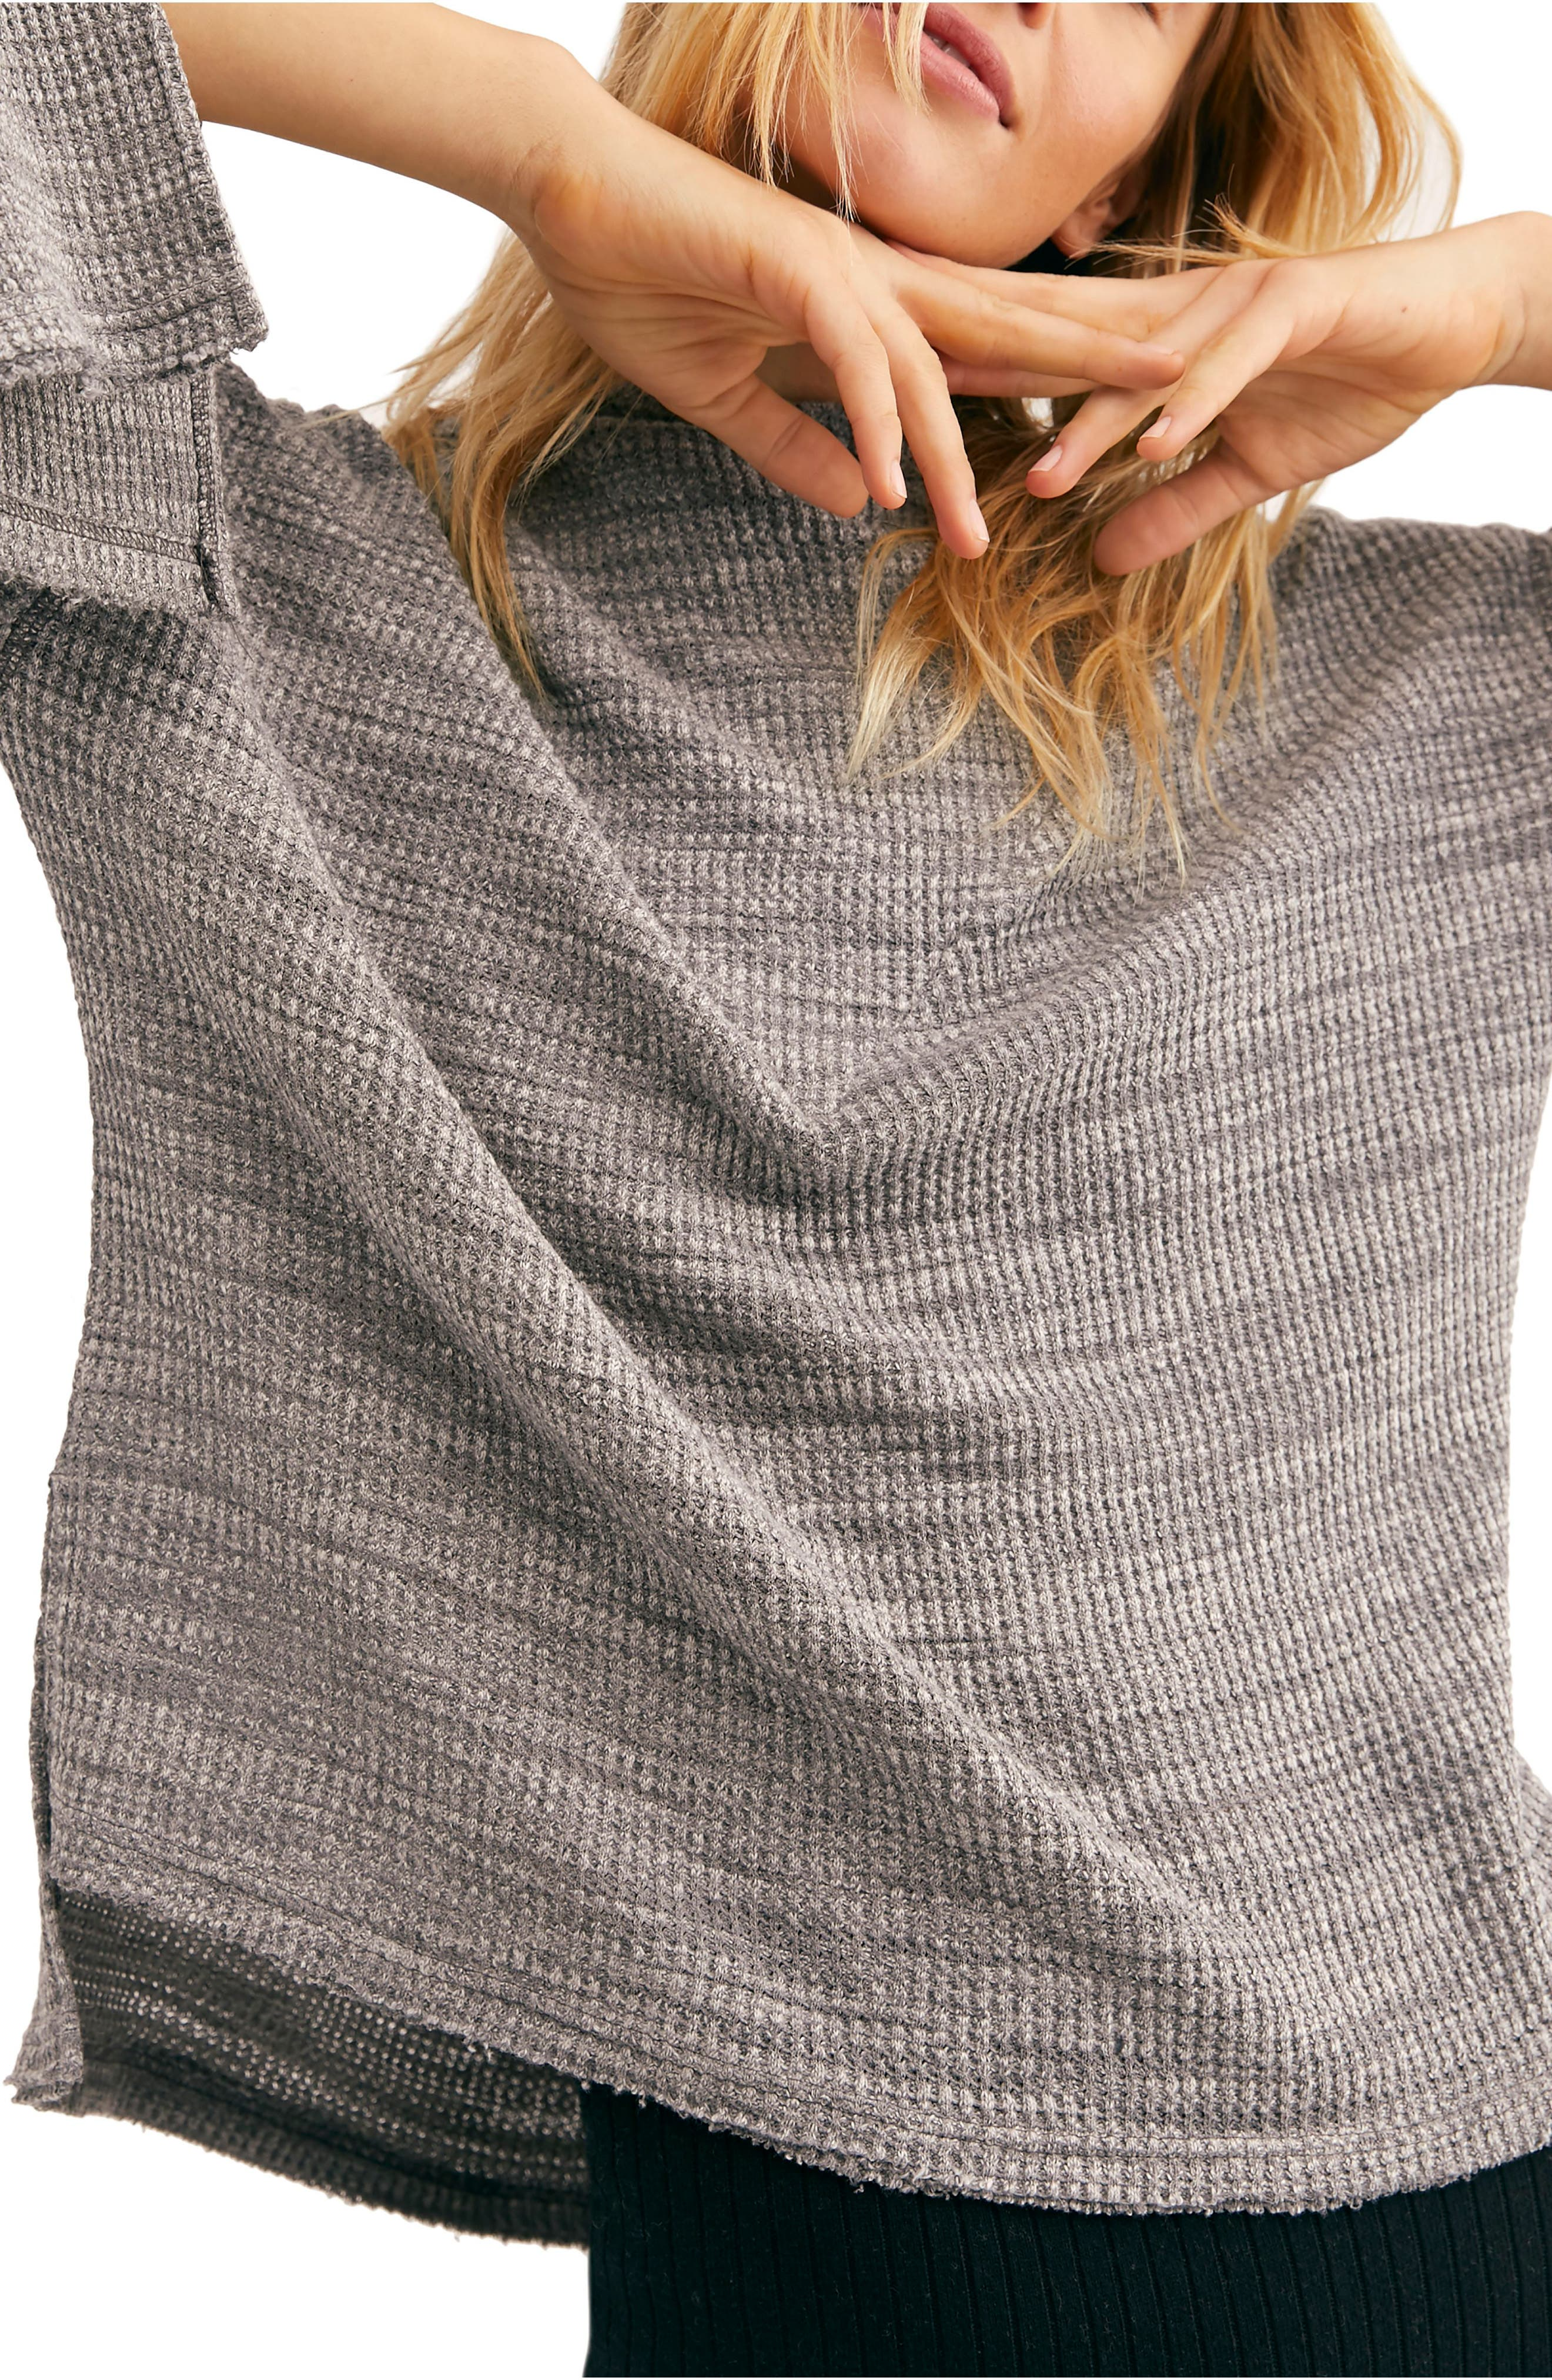 FREE PEOPLE, Endless Summer by Free People Hooded Knit Top, Alternate thumbnail 4, color, GREY